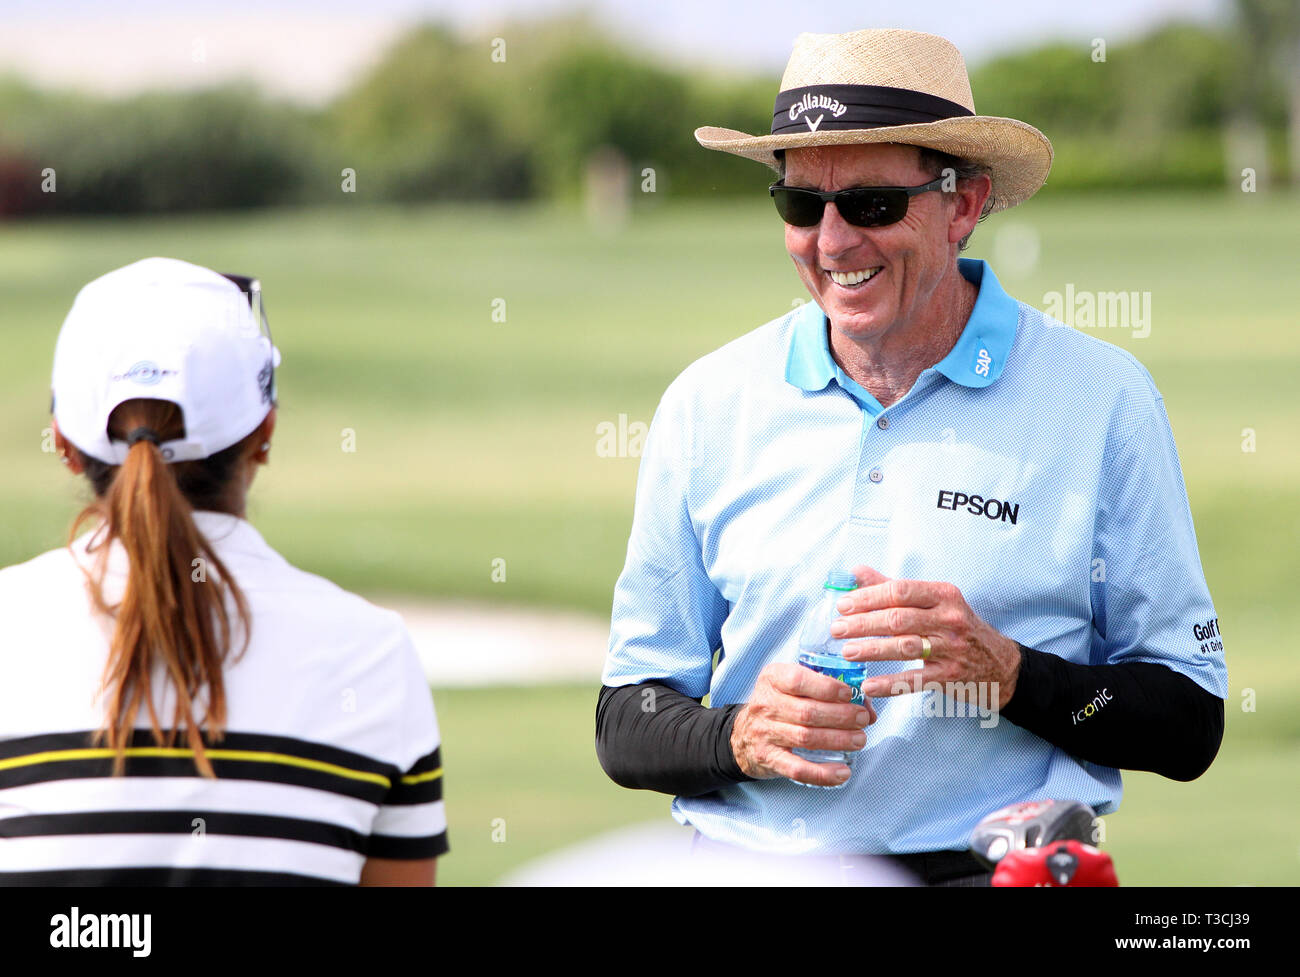 David Leadbetter Stock Photos & David Leadbetter Stock Images - Alamy